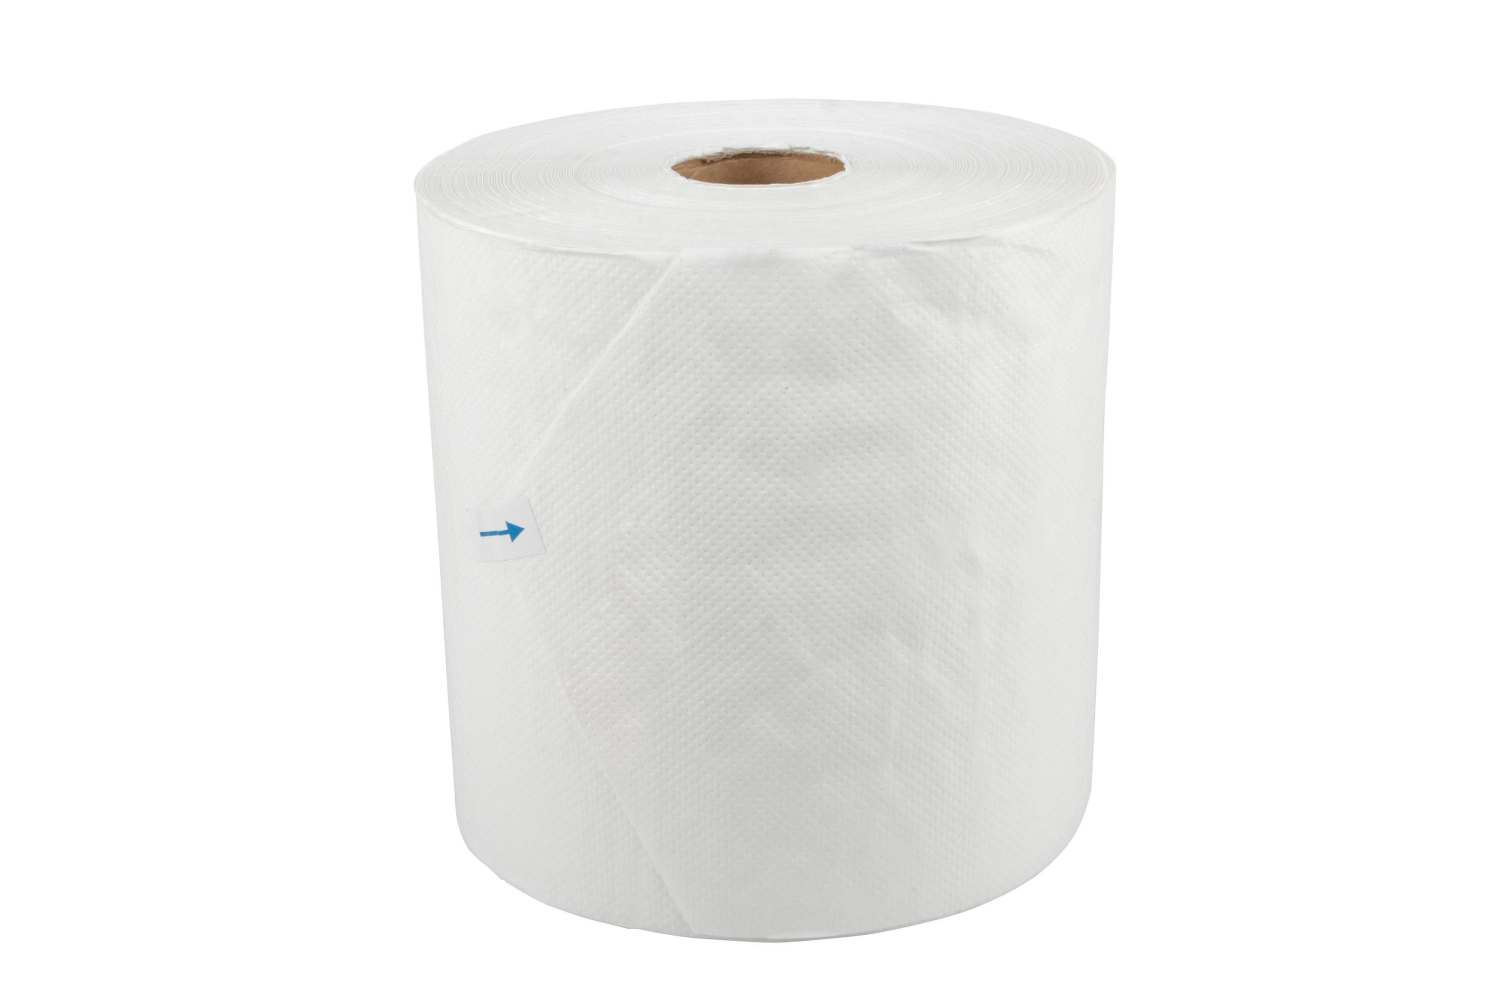 Medline Standard Roll Towel - Paper, 1Ply, 7.875X800', Bleach, Box of 6 - Model NONPBM800B